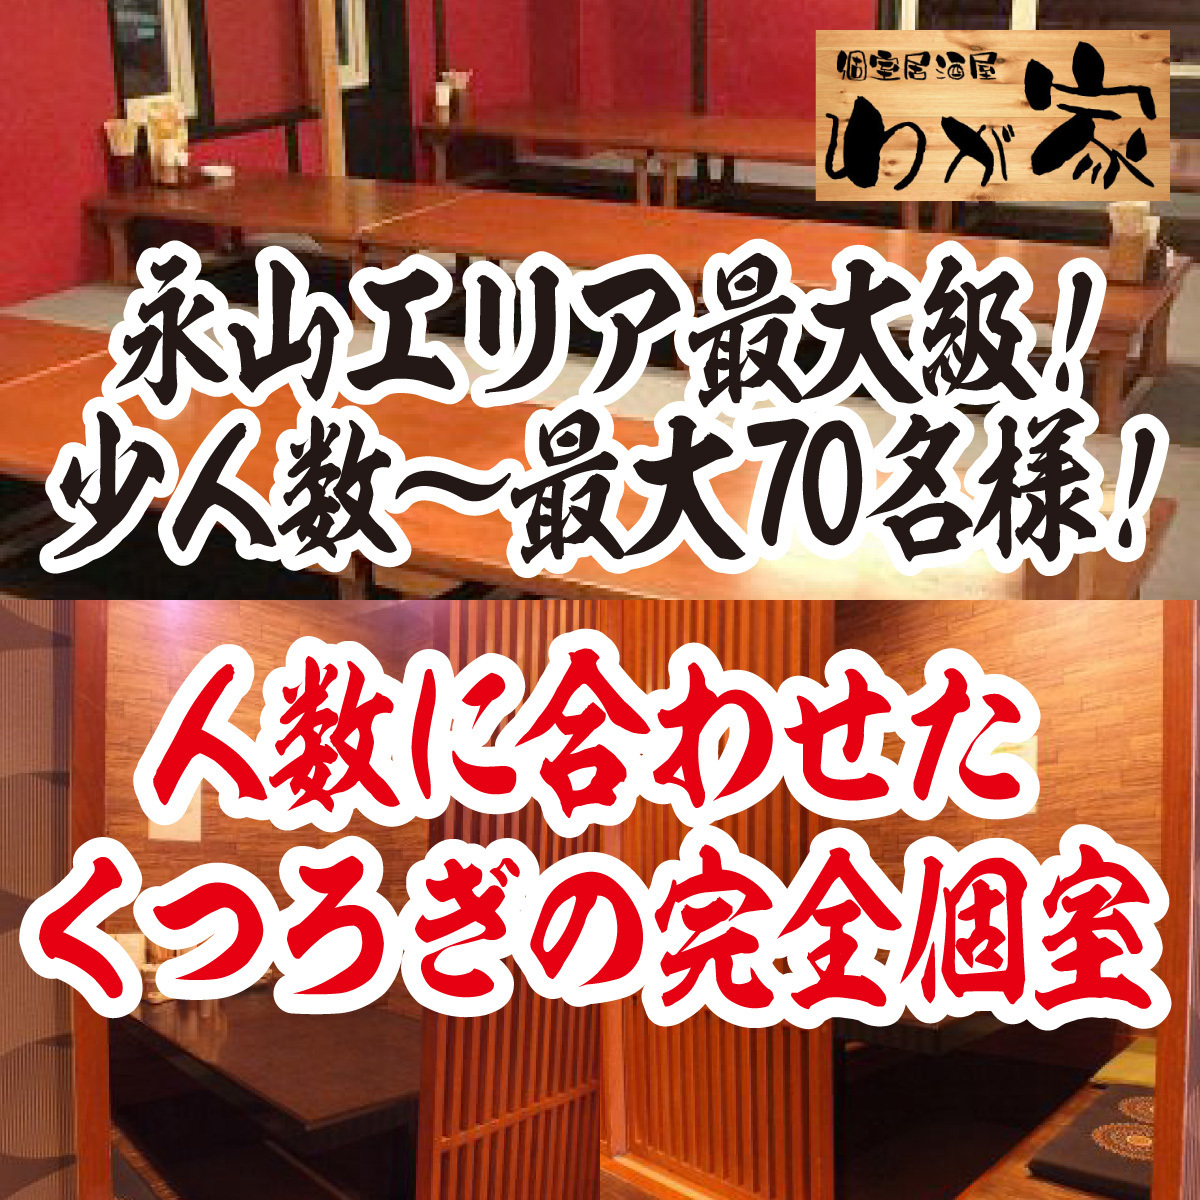 【One of the best in Nagayama area! All boasted boasts boasting】 Support from a small group to a maximum of 70 people!